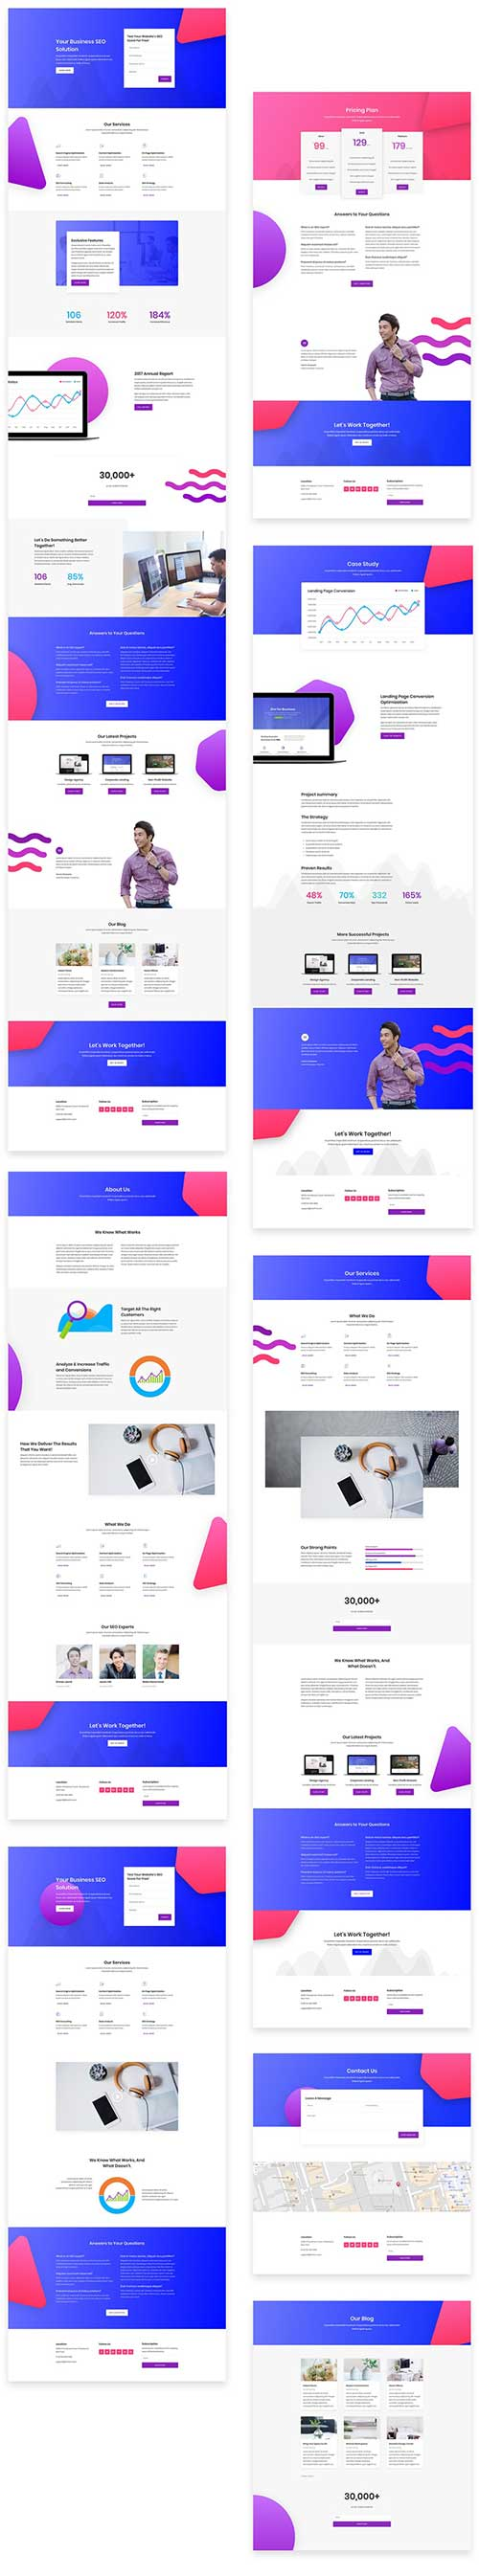 Divi SEO agency layout pack download